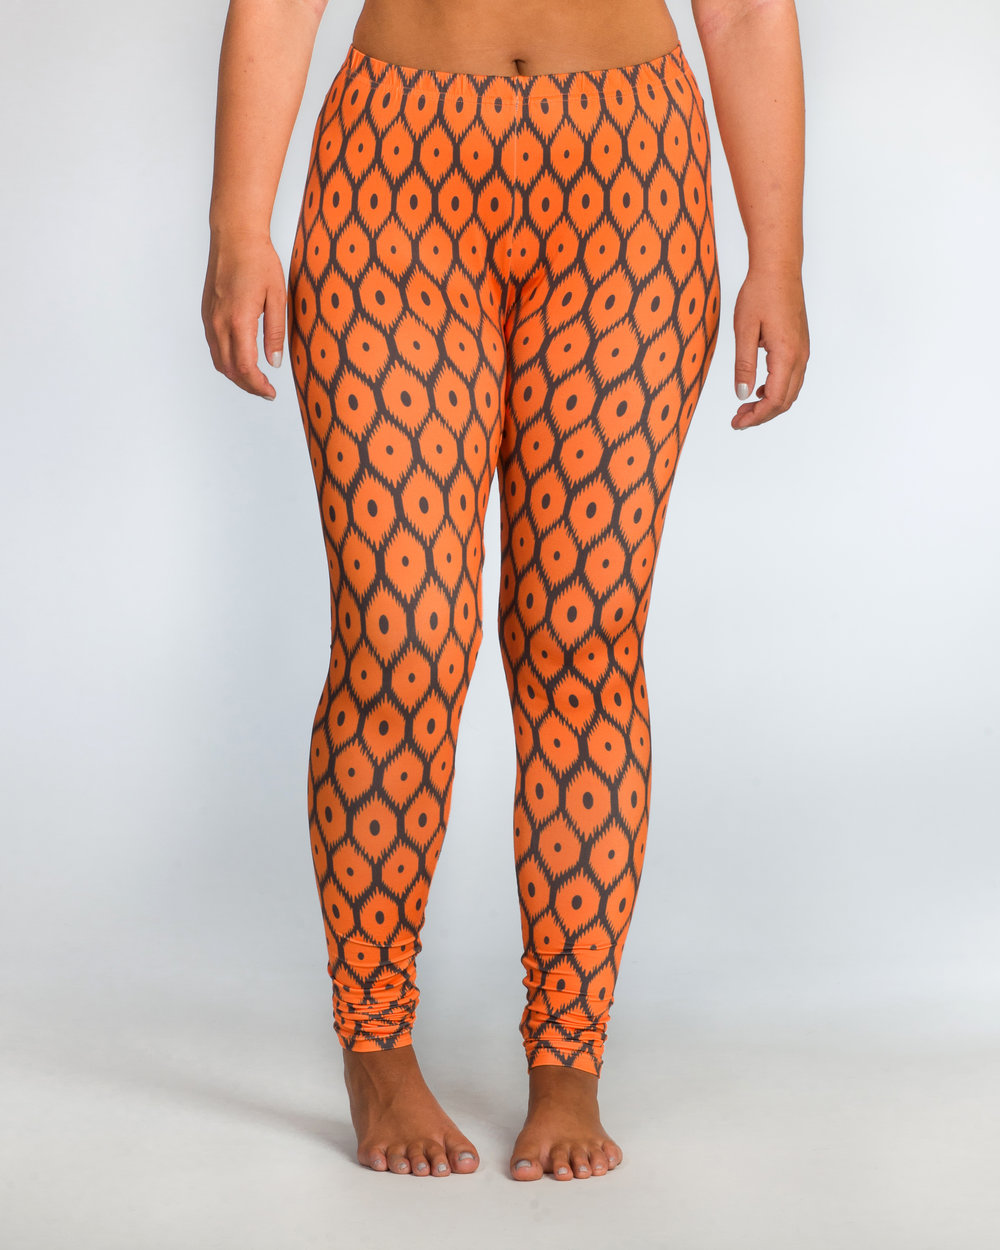 "Scout is 5' 8"" tall, has 33"" hips, and chose a size XL in Gameday Leggings Tennessee Flamestitch."